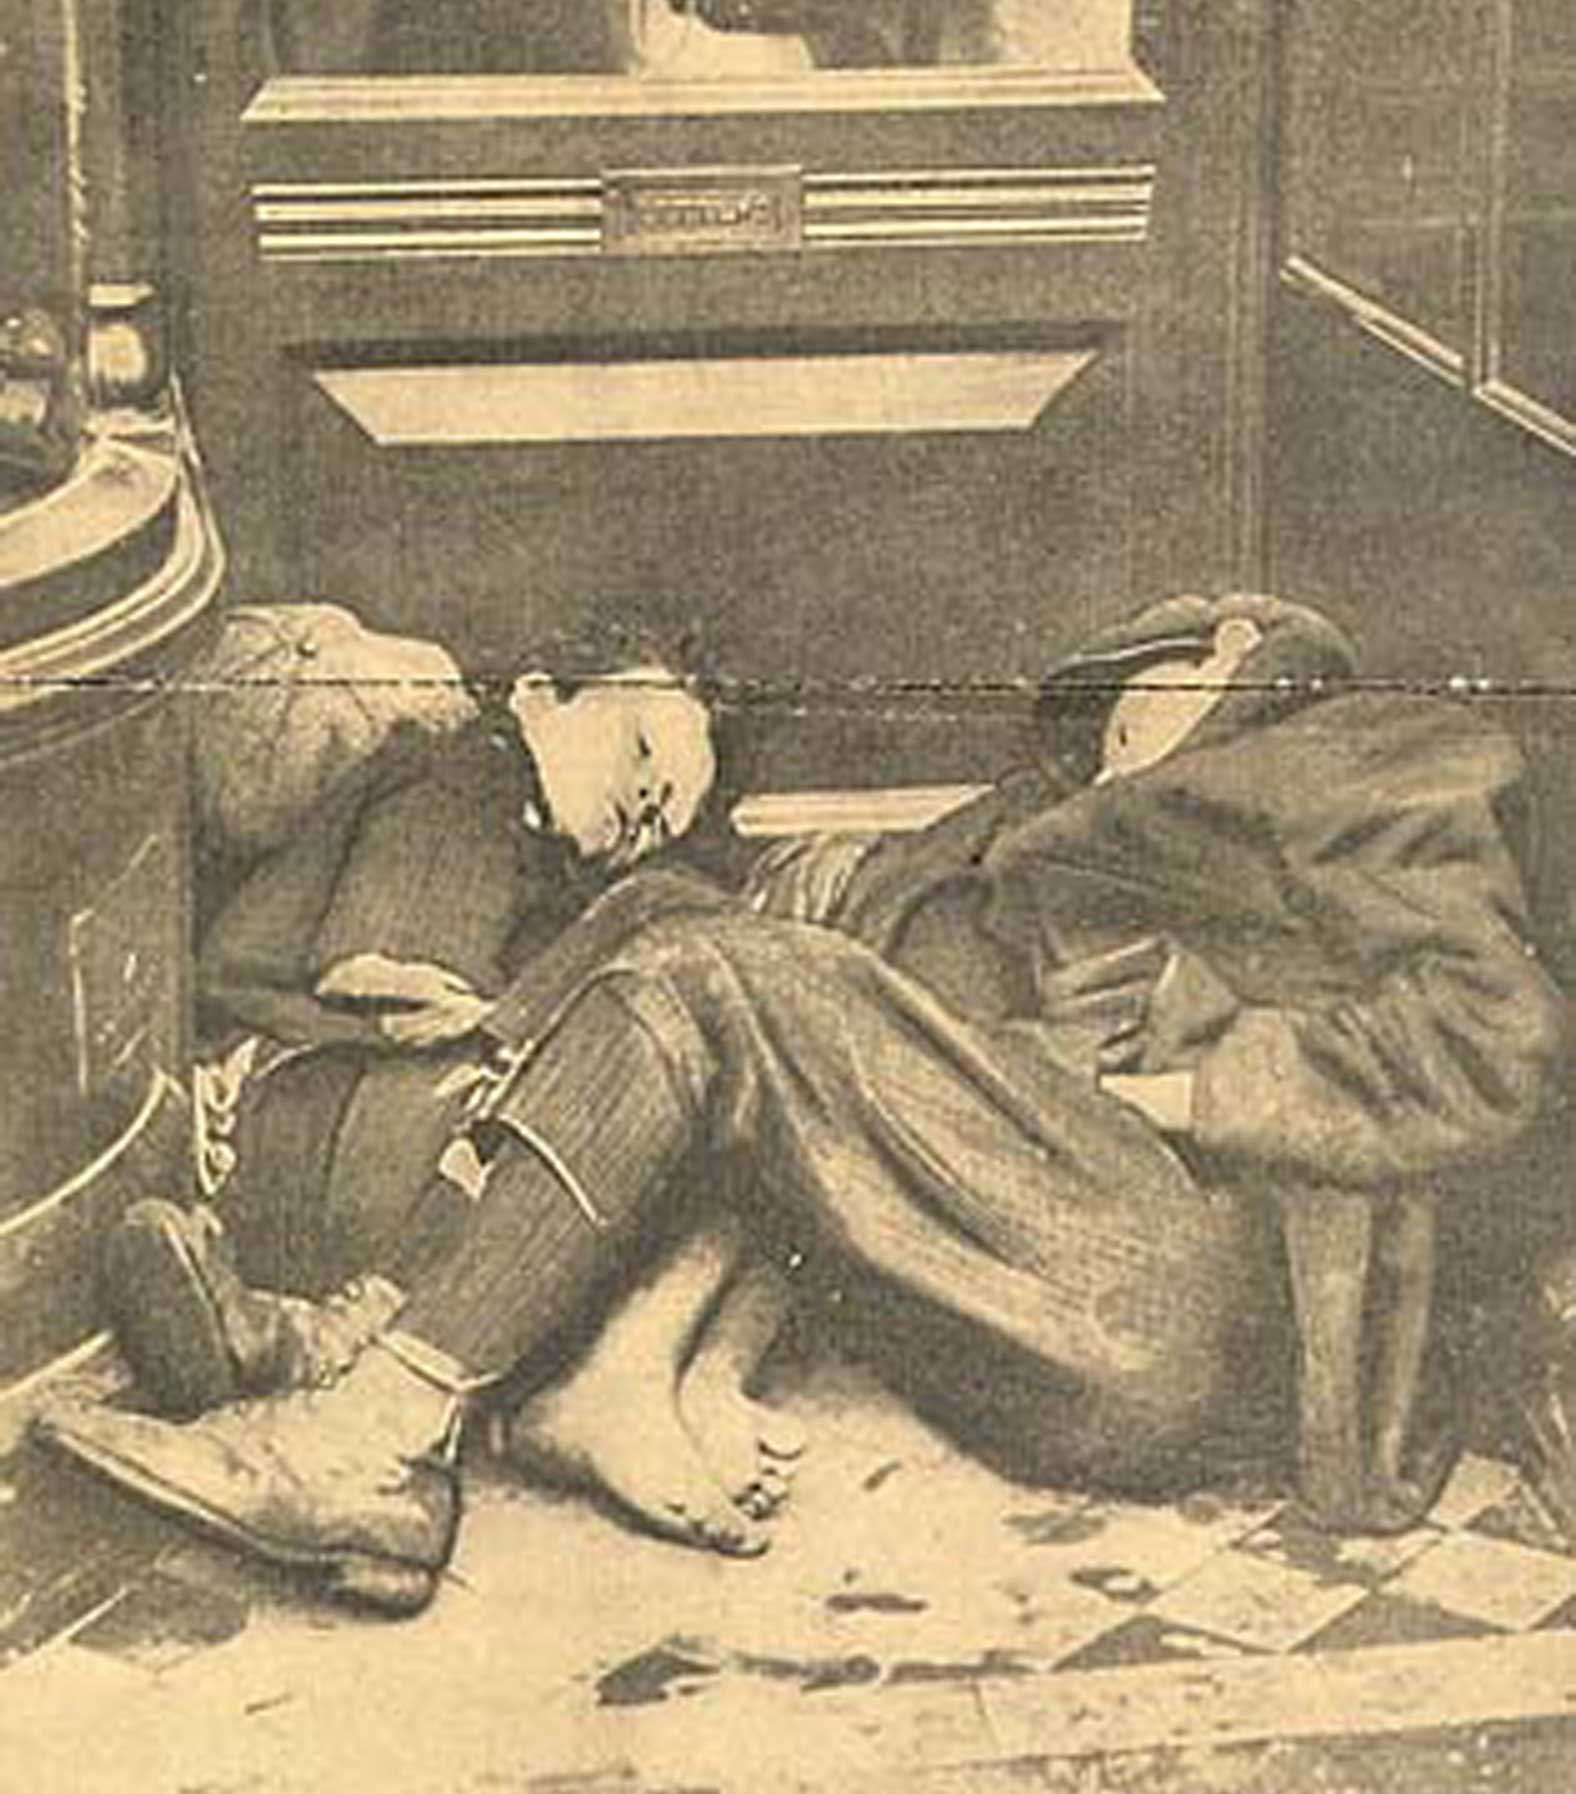 La Misère à Dublin: two young boys taking shelter in a doorway in the city. Published in Paris - Le Miroir, 18 Rue D'Enghien, 23 November 1913.